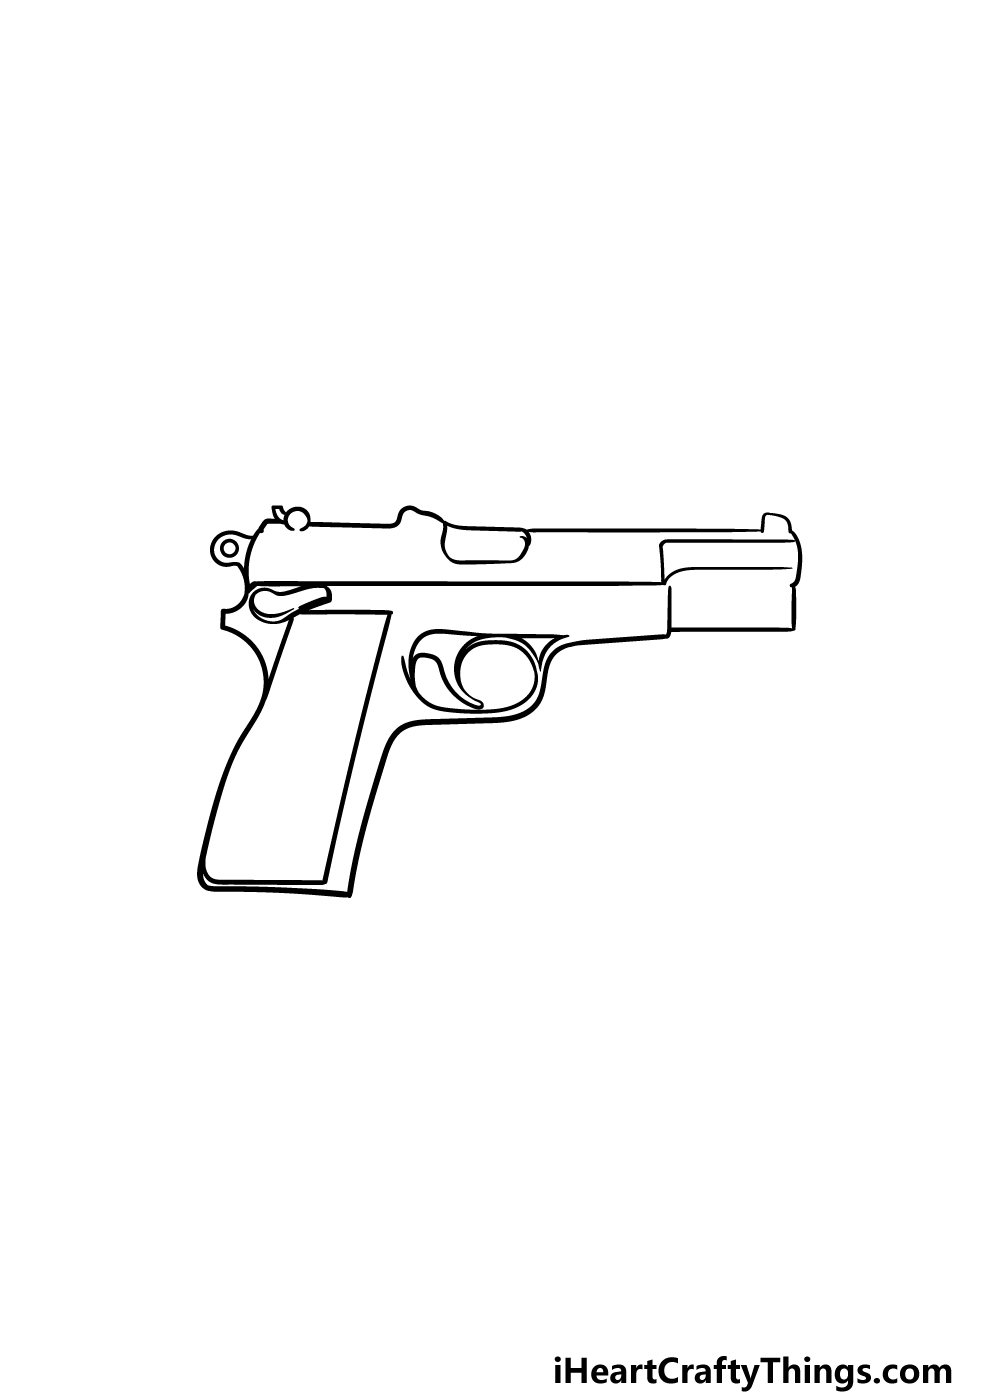 drawing a pistol step 3